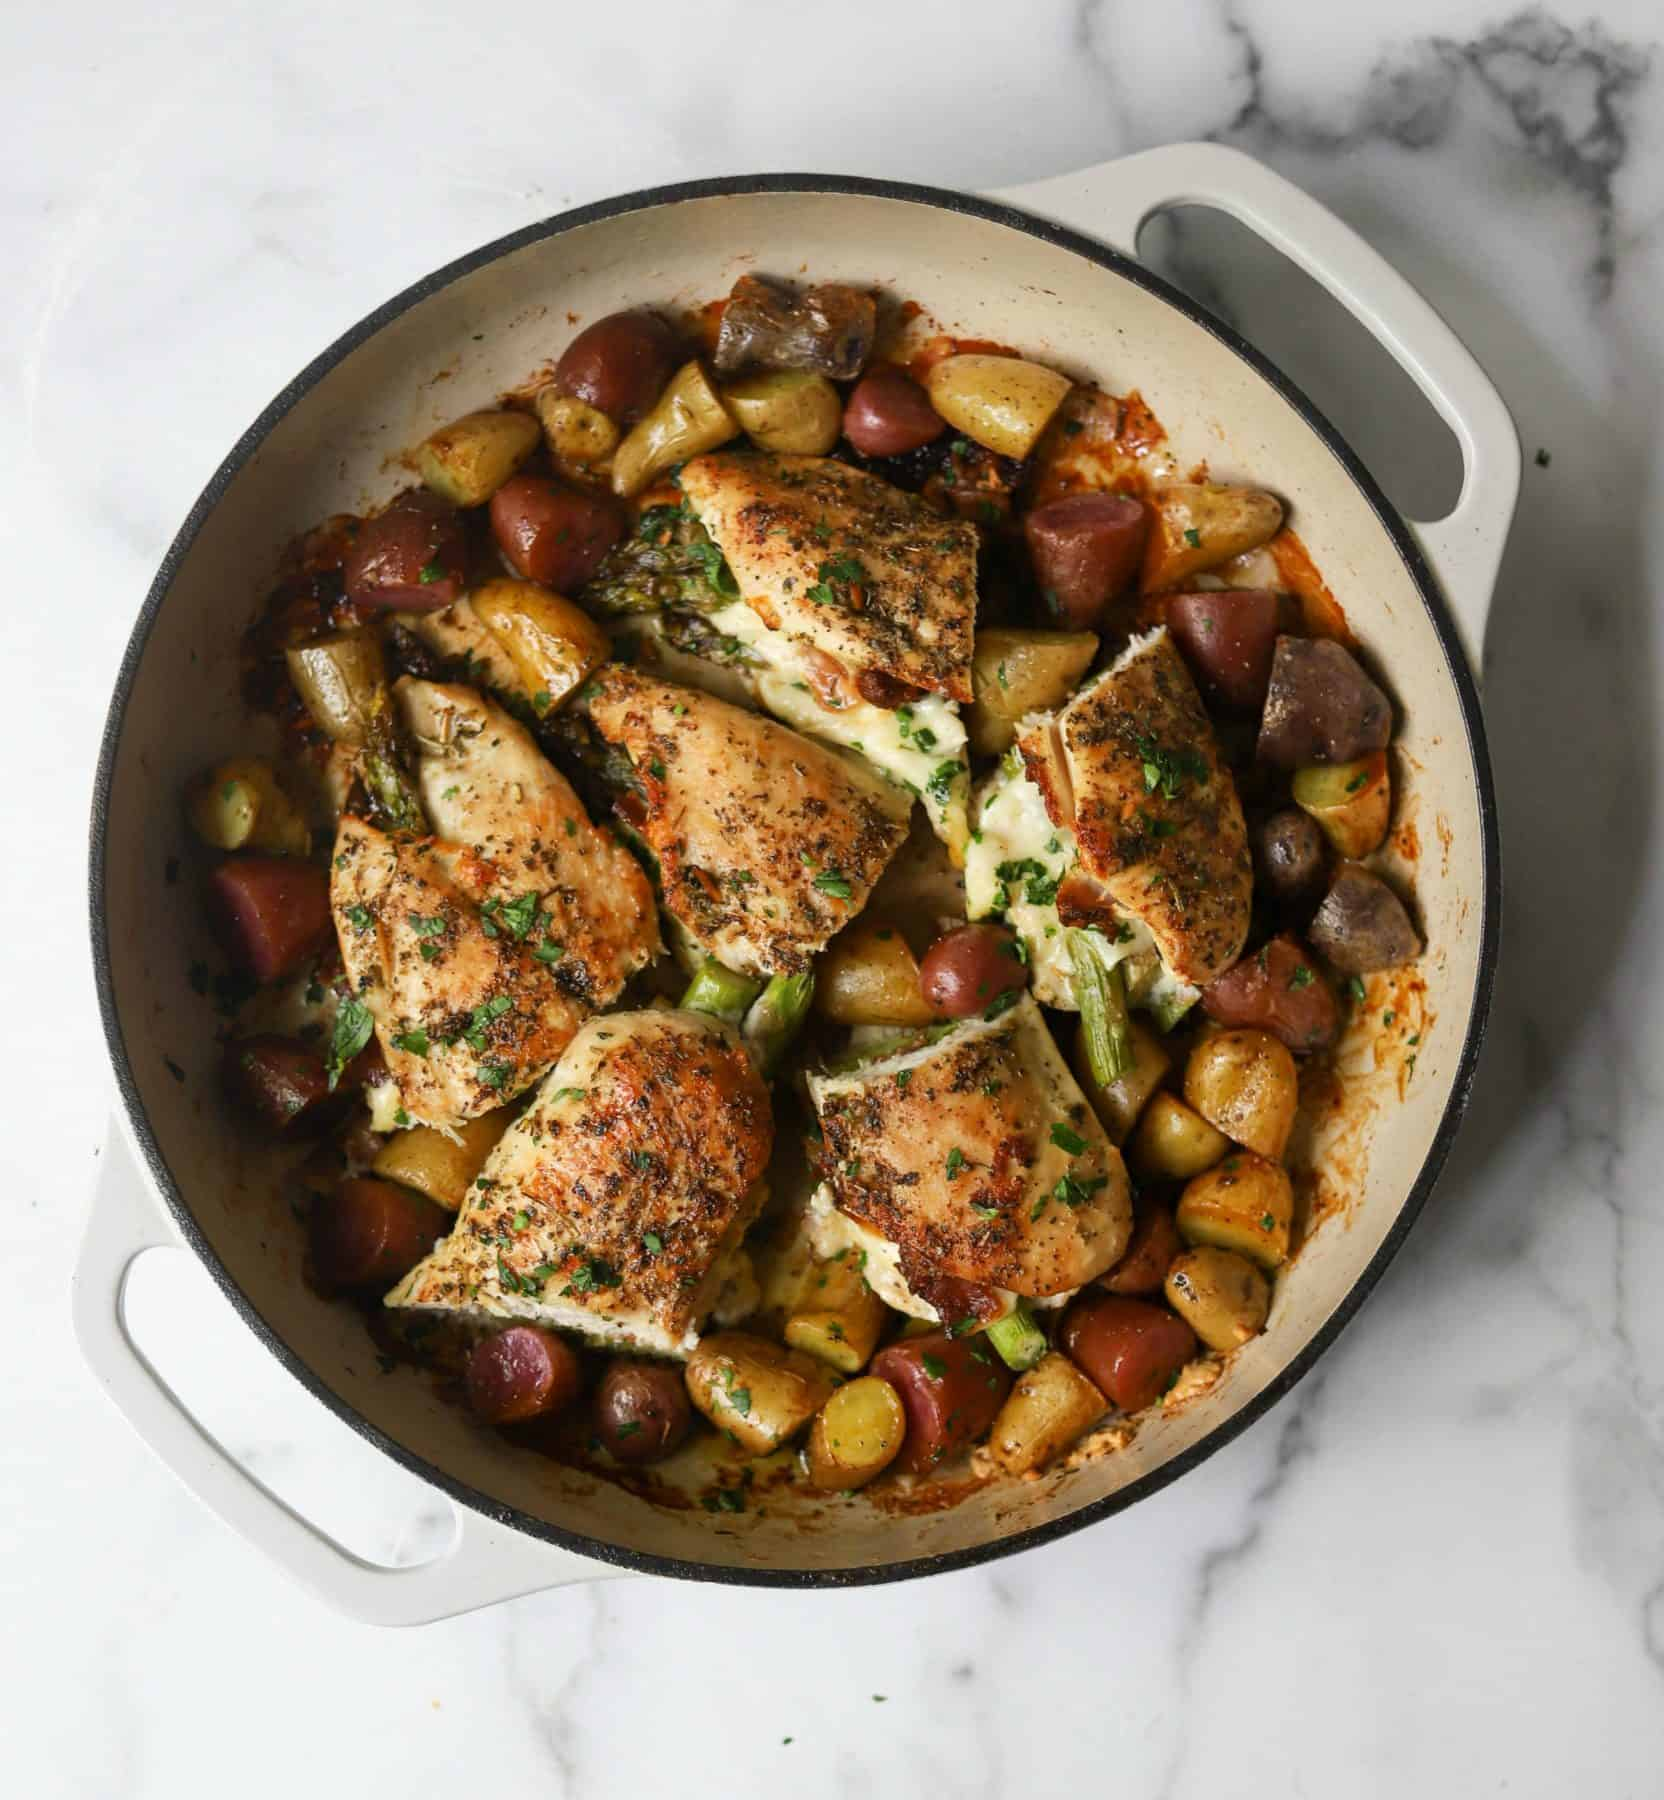 Asparagus stuffed chicken in a white pot